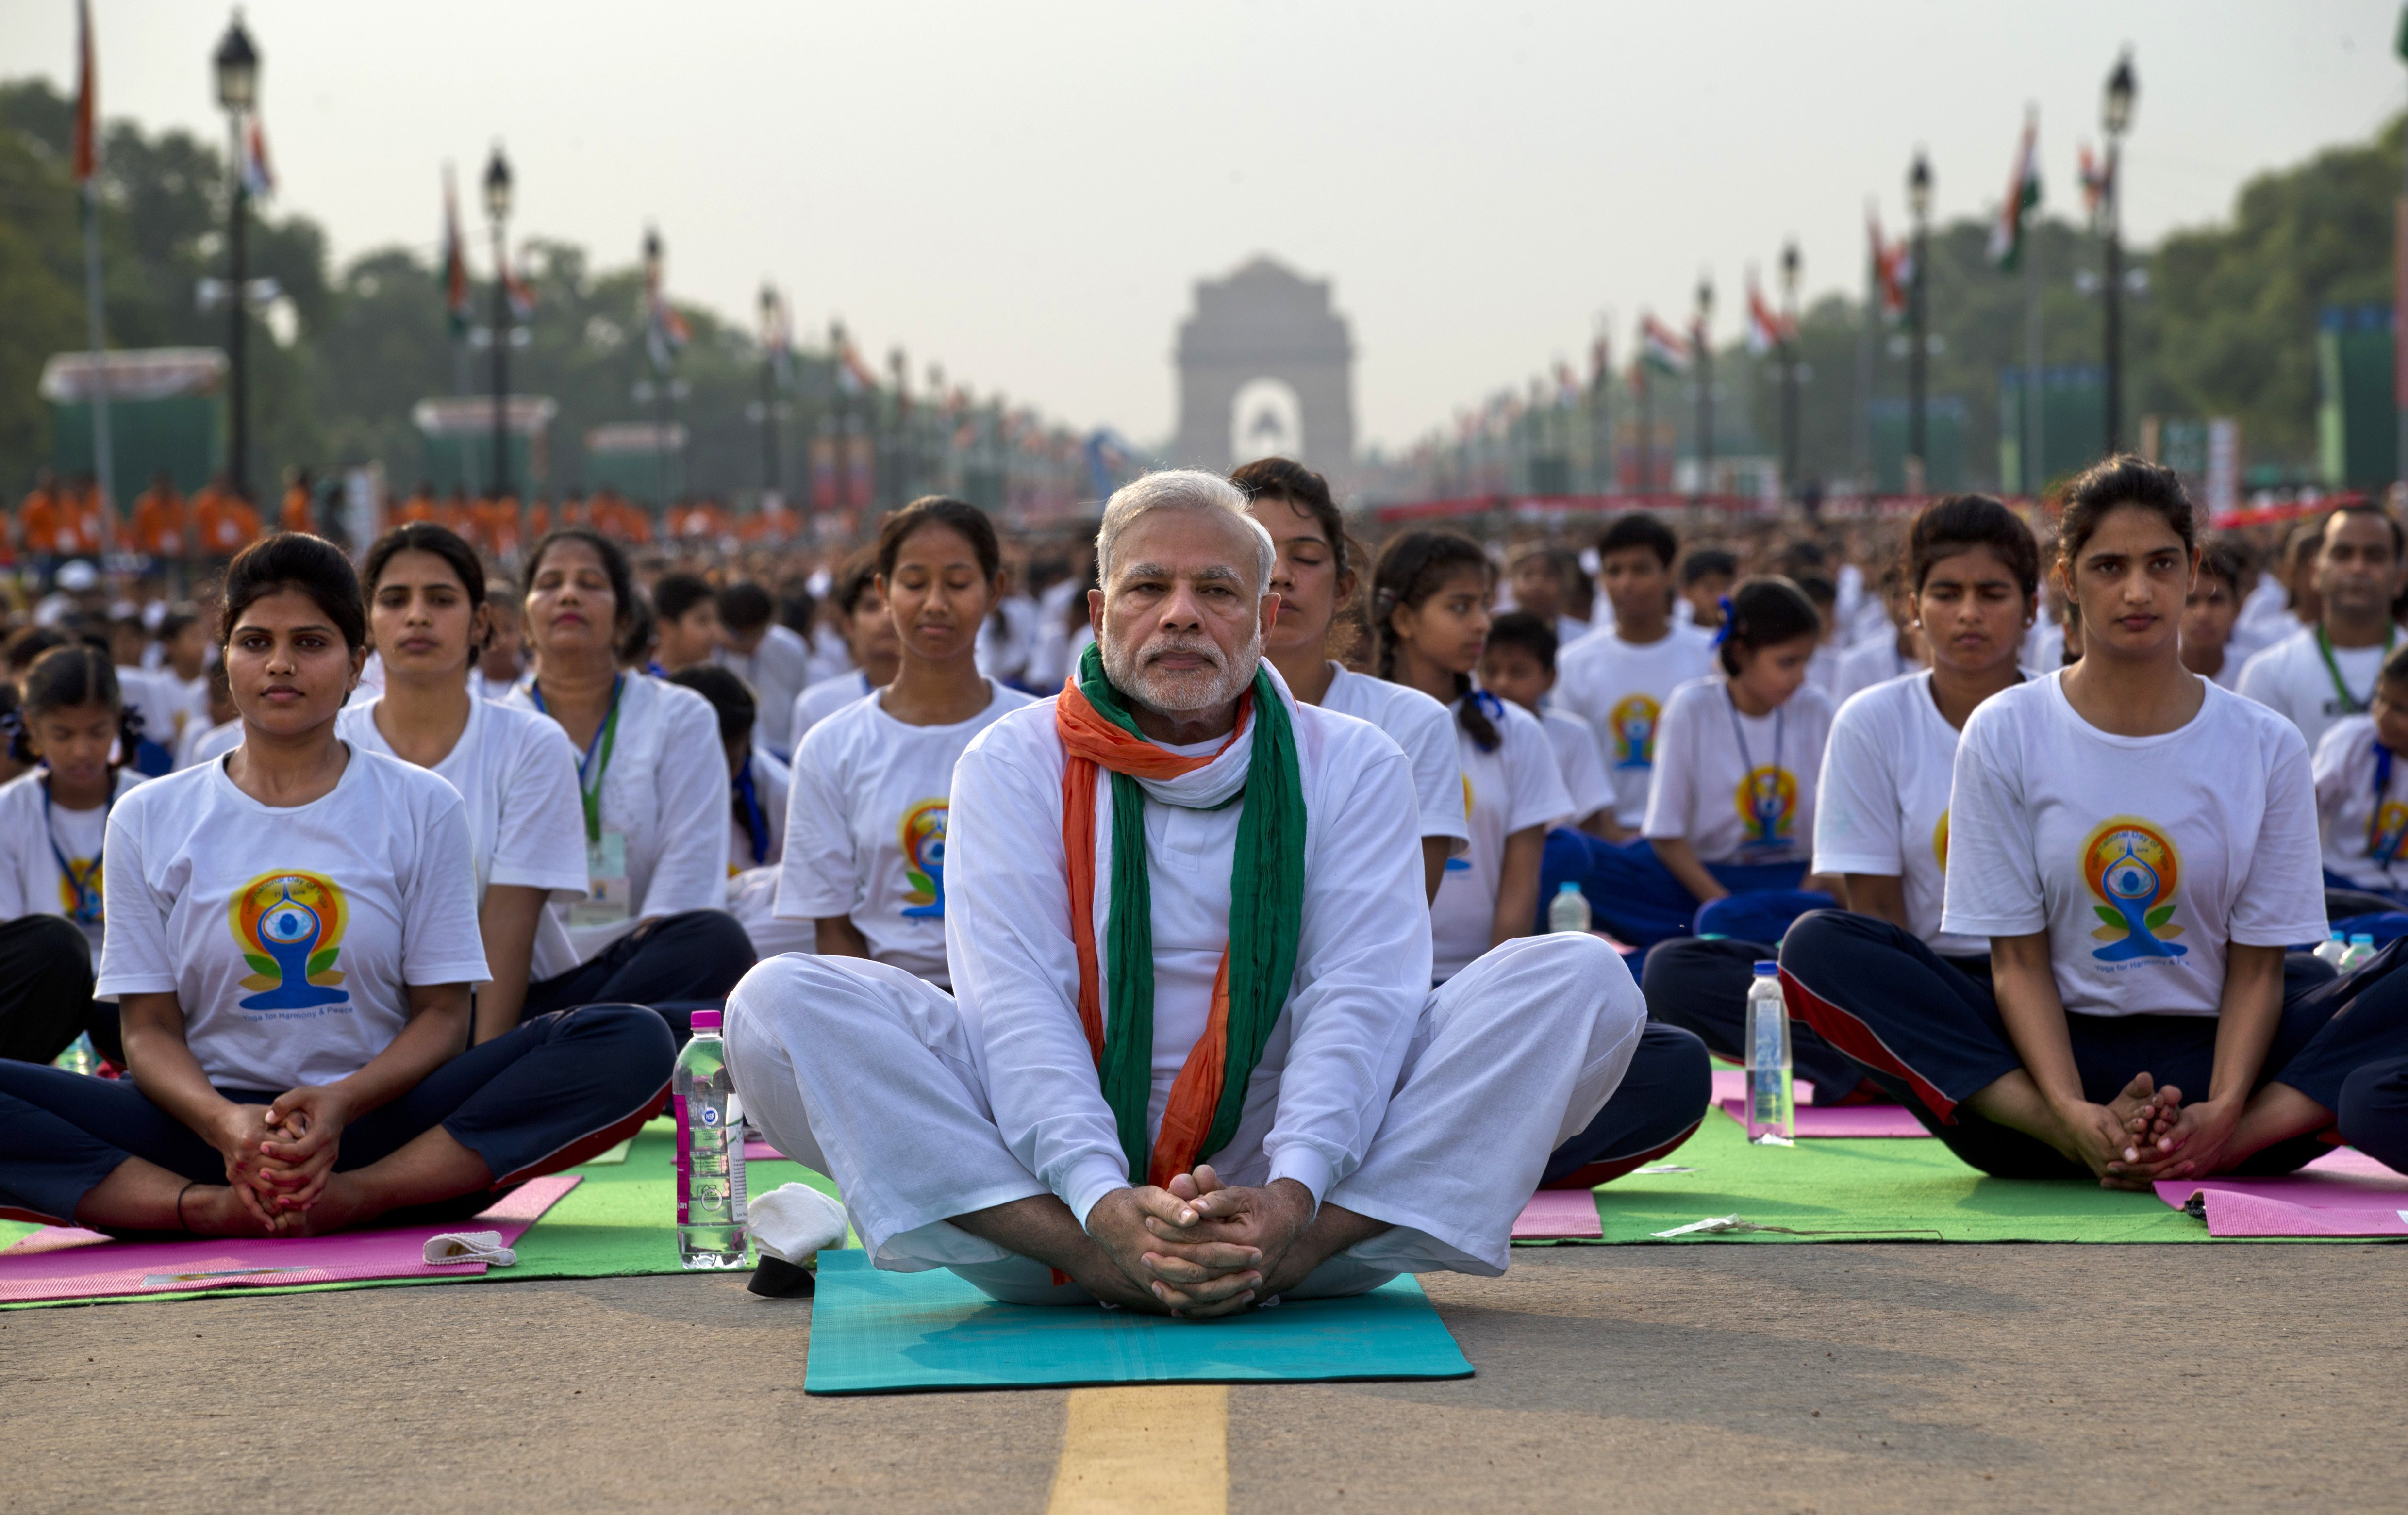 Indian Prime Minister Narendra Modi sits on a mat as he performs yoga along with thousands of Indians on Rajpath, a boulevard in New Delhi, June 21, 2015.